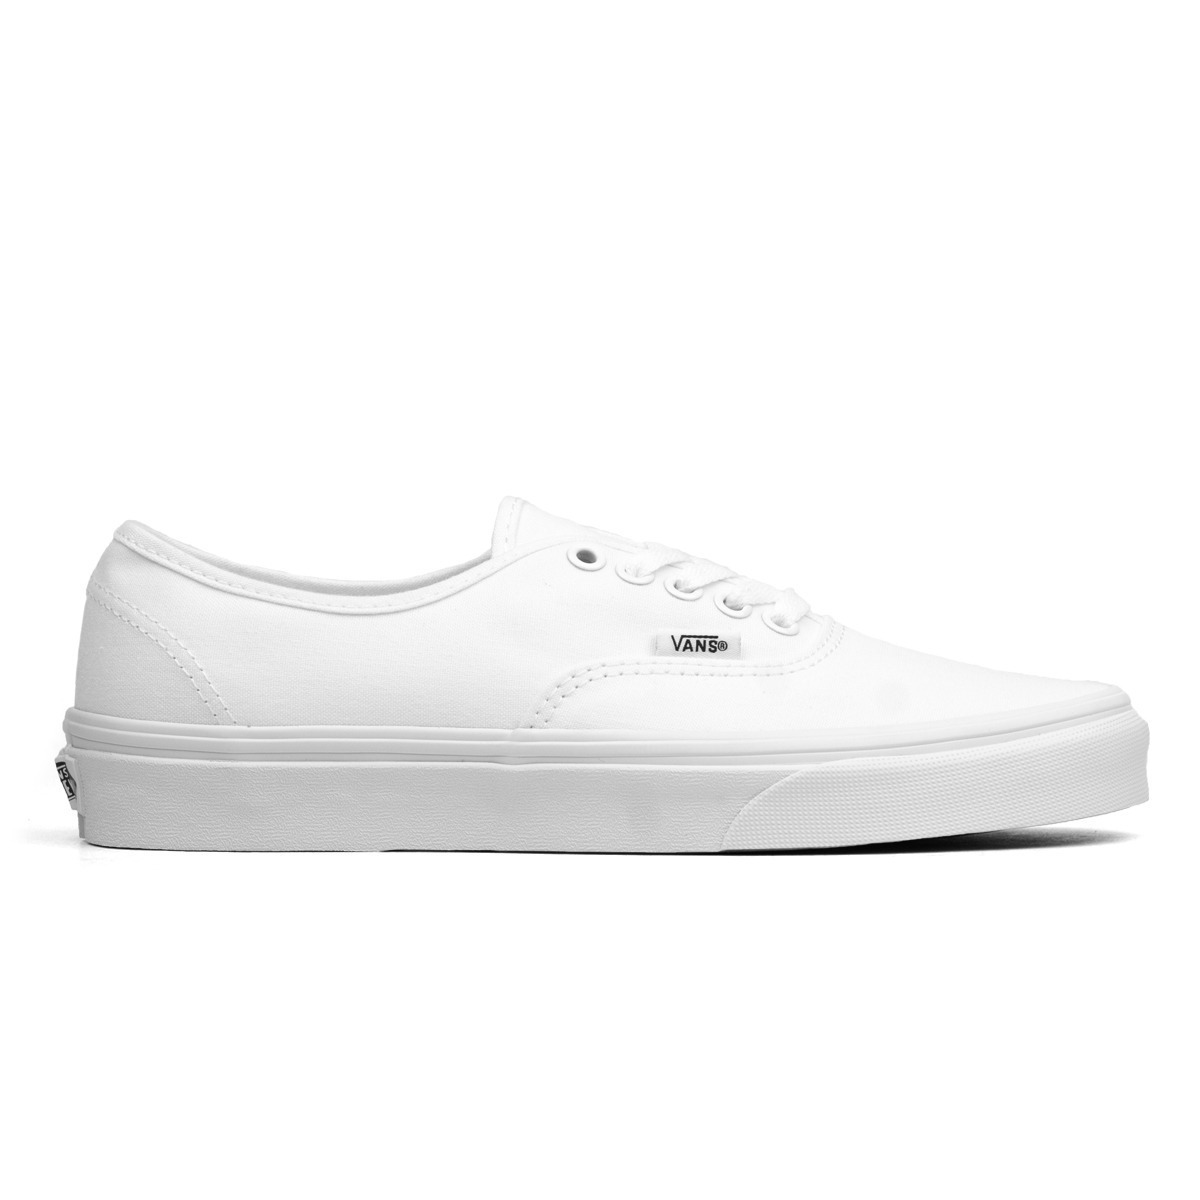 Zapatillas Vans Authentic Blanco Lona